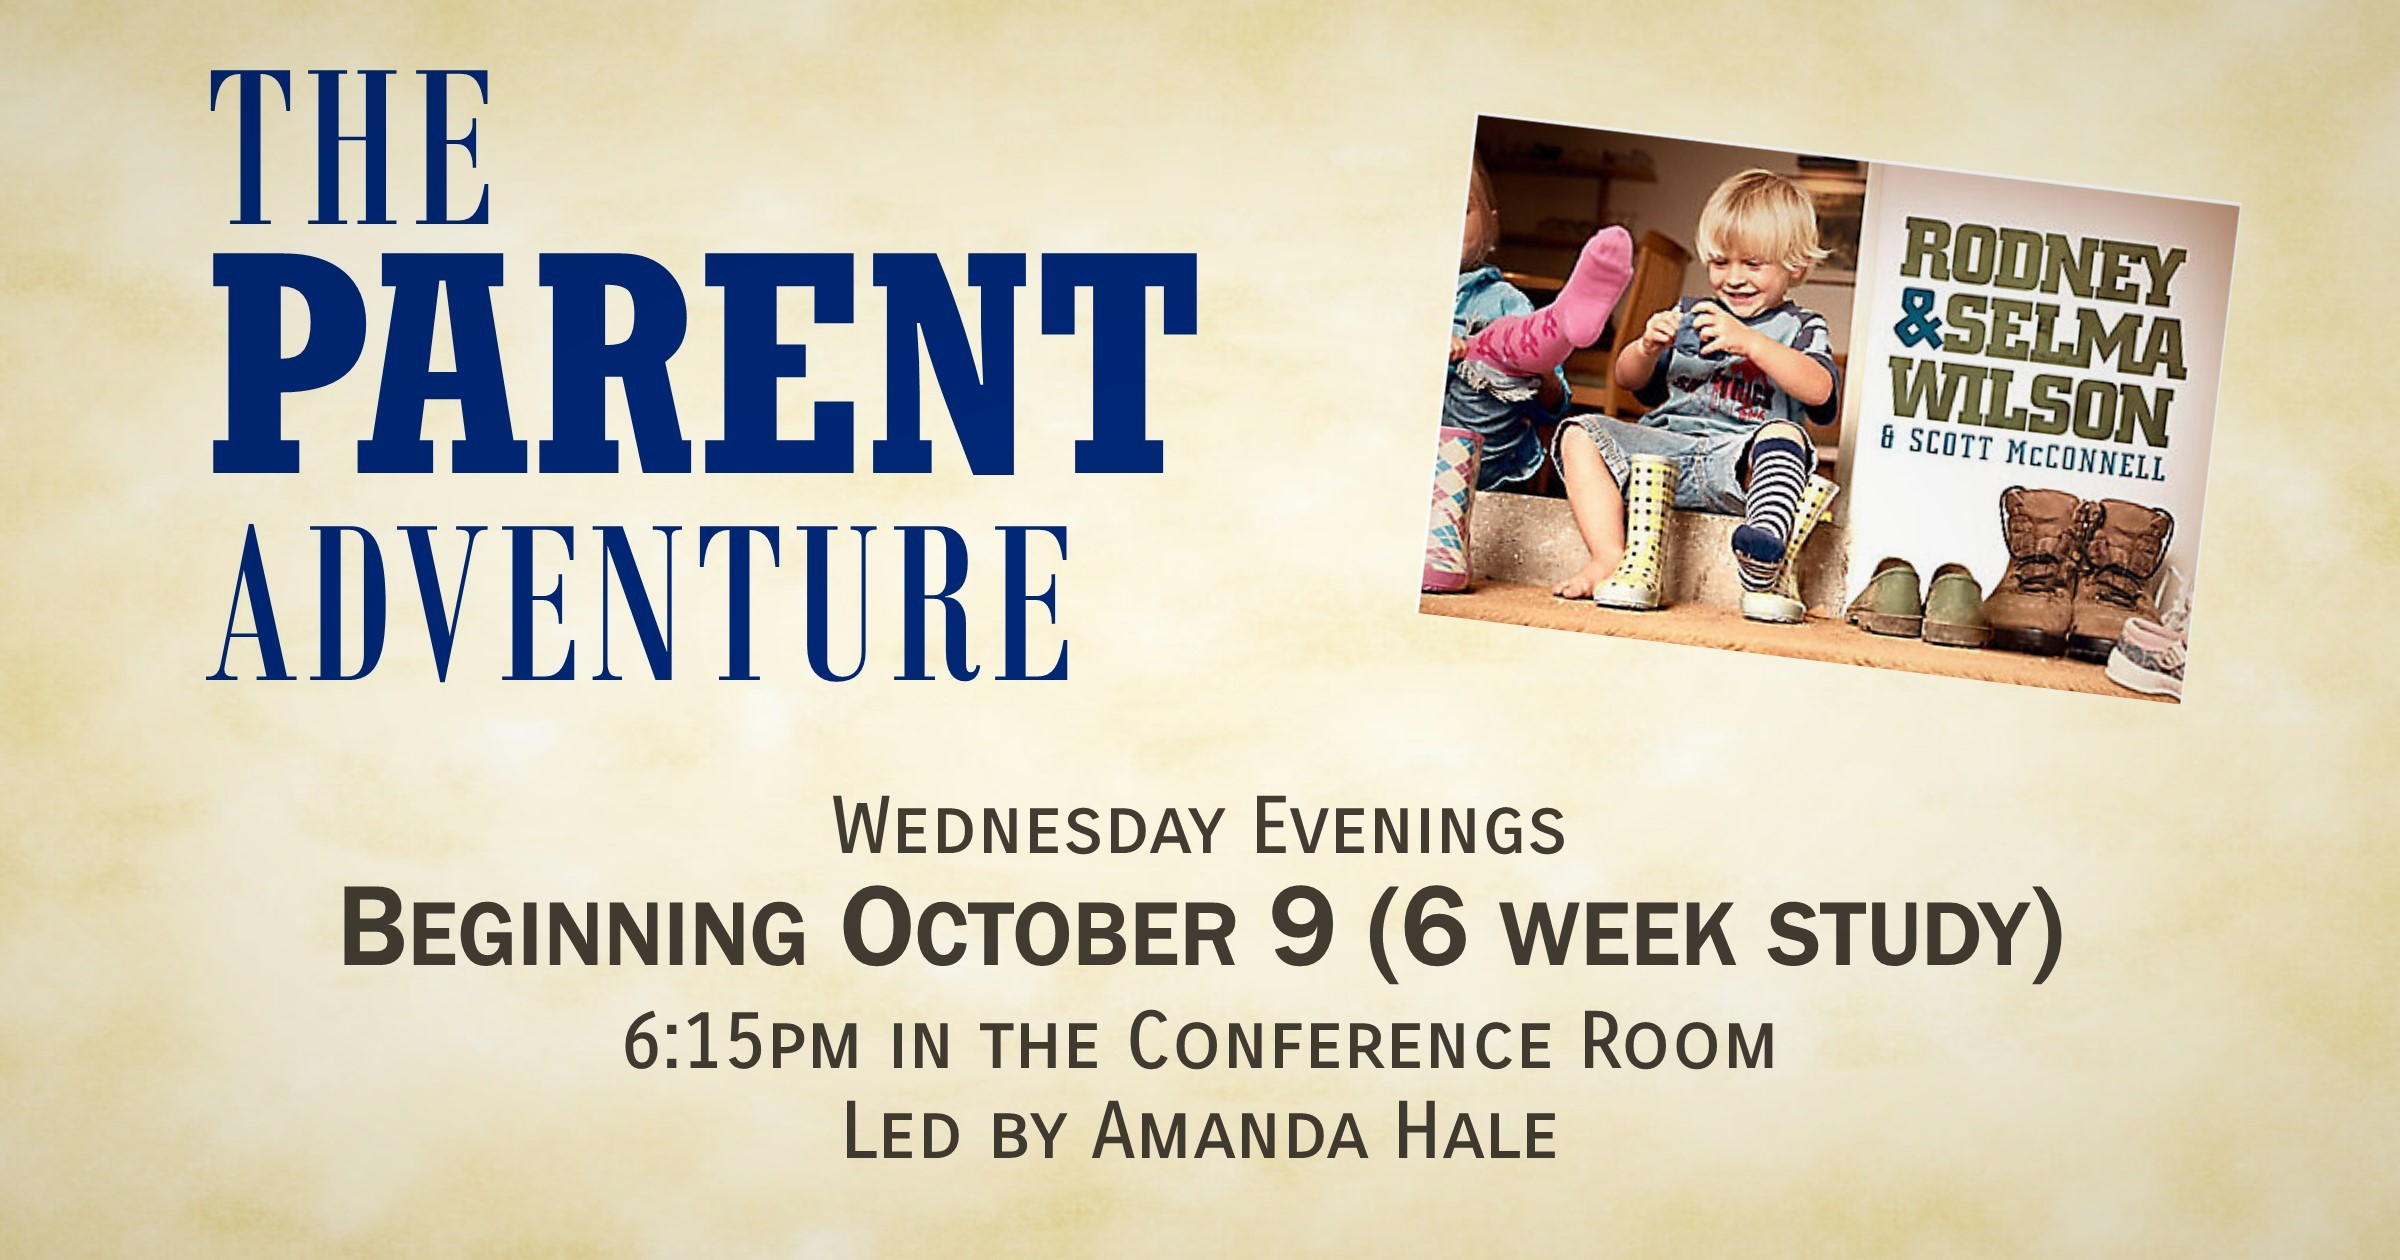 The parent adventure wednesday study fb Oct 2019 edit.jpg